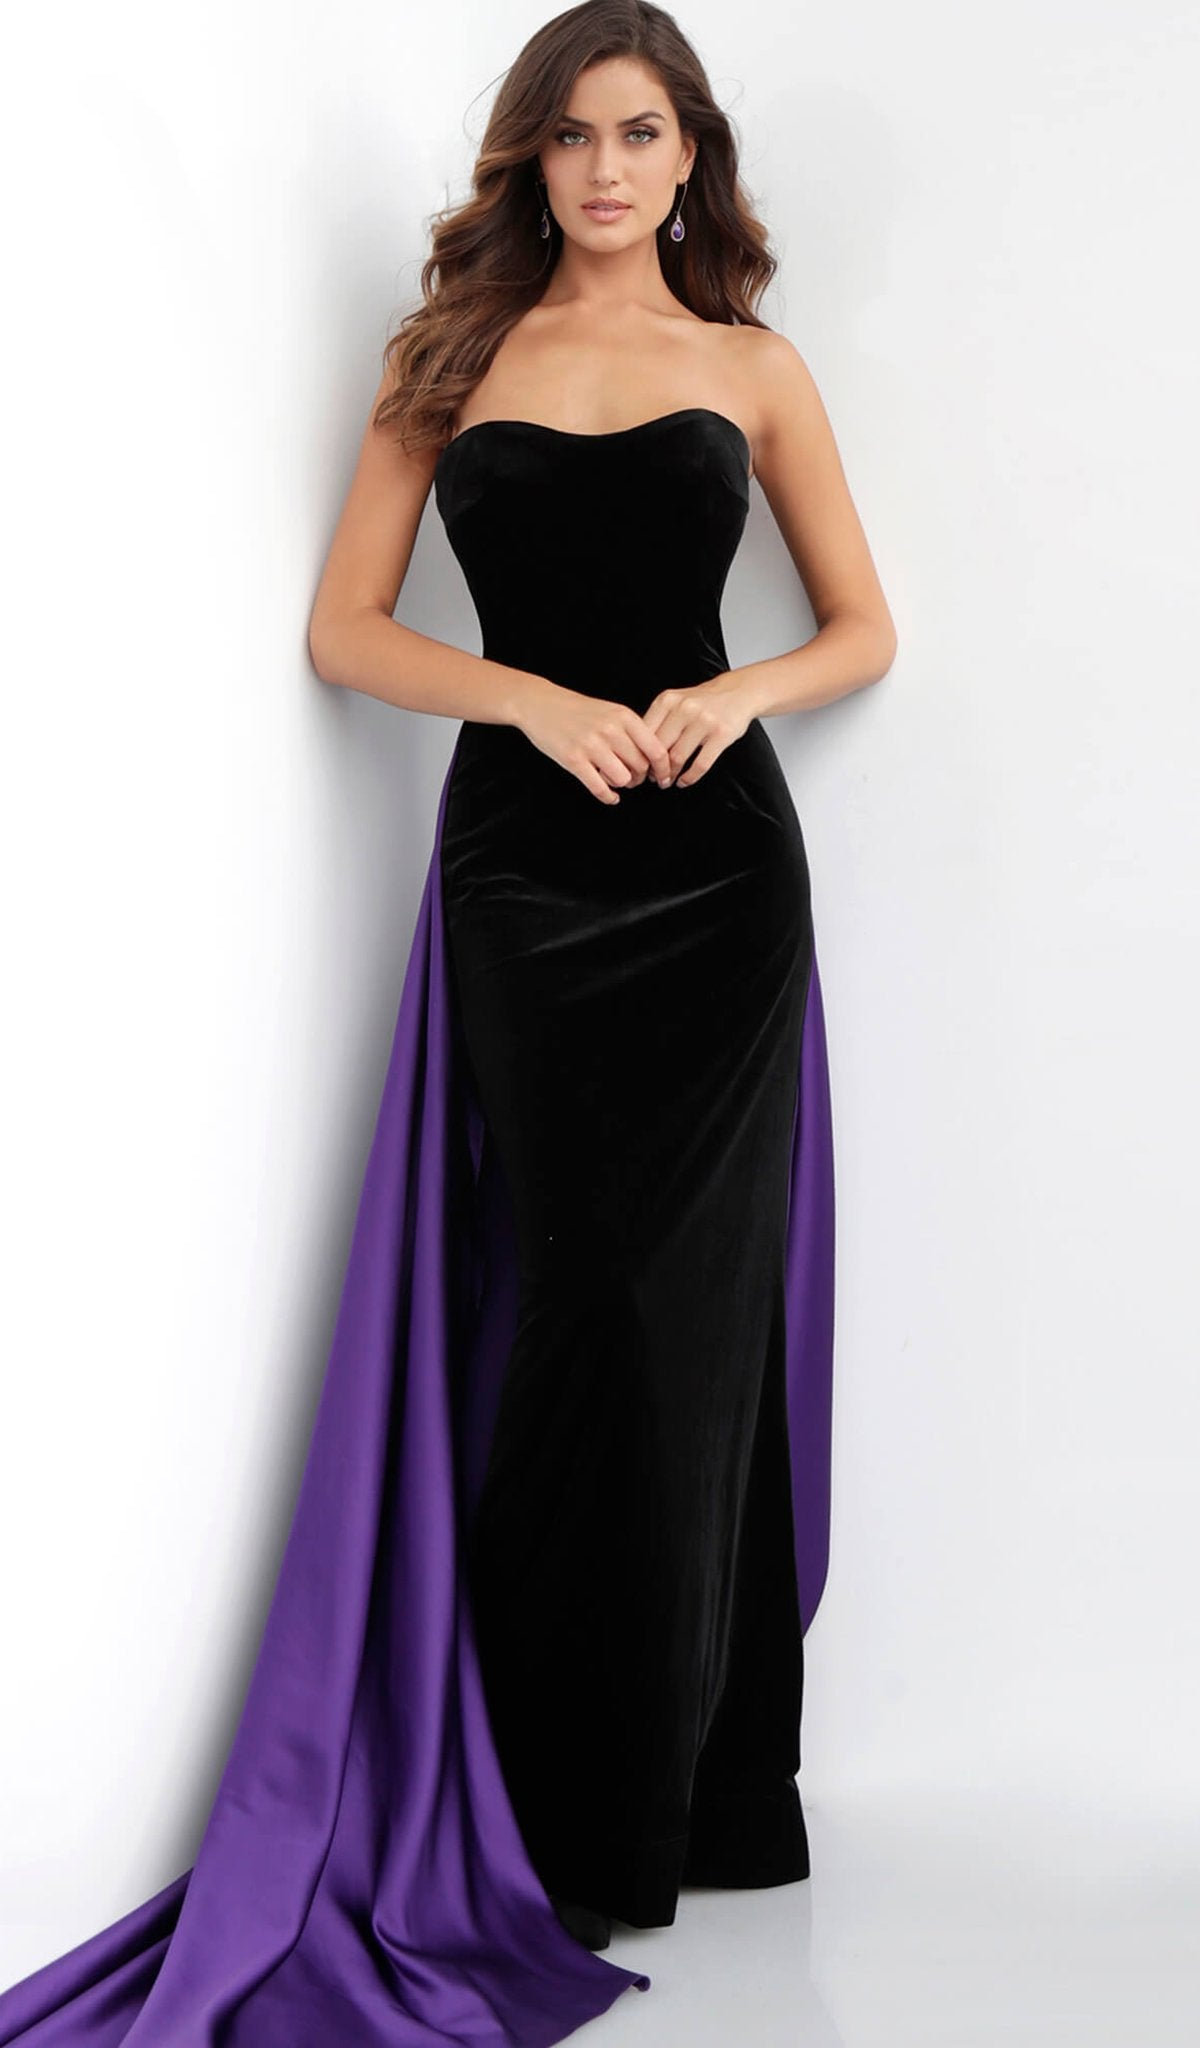 Jovani - 64830 Two Tone Strapless Velvet Dress With Satin Overskirt in Black and Purple